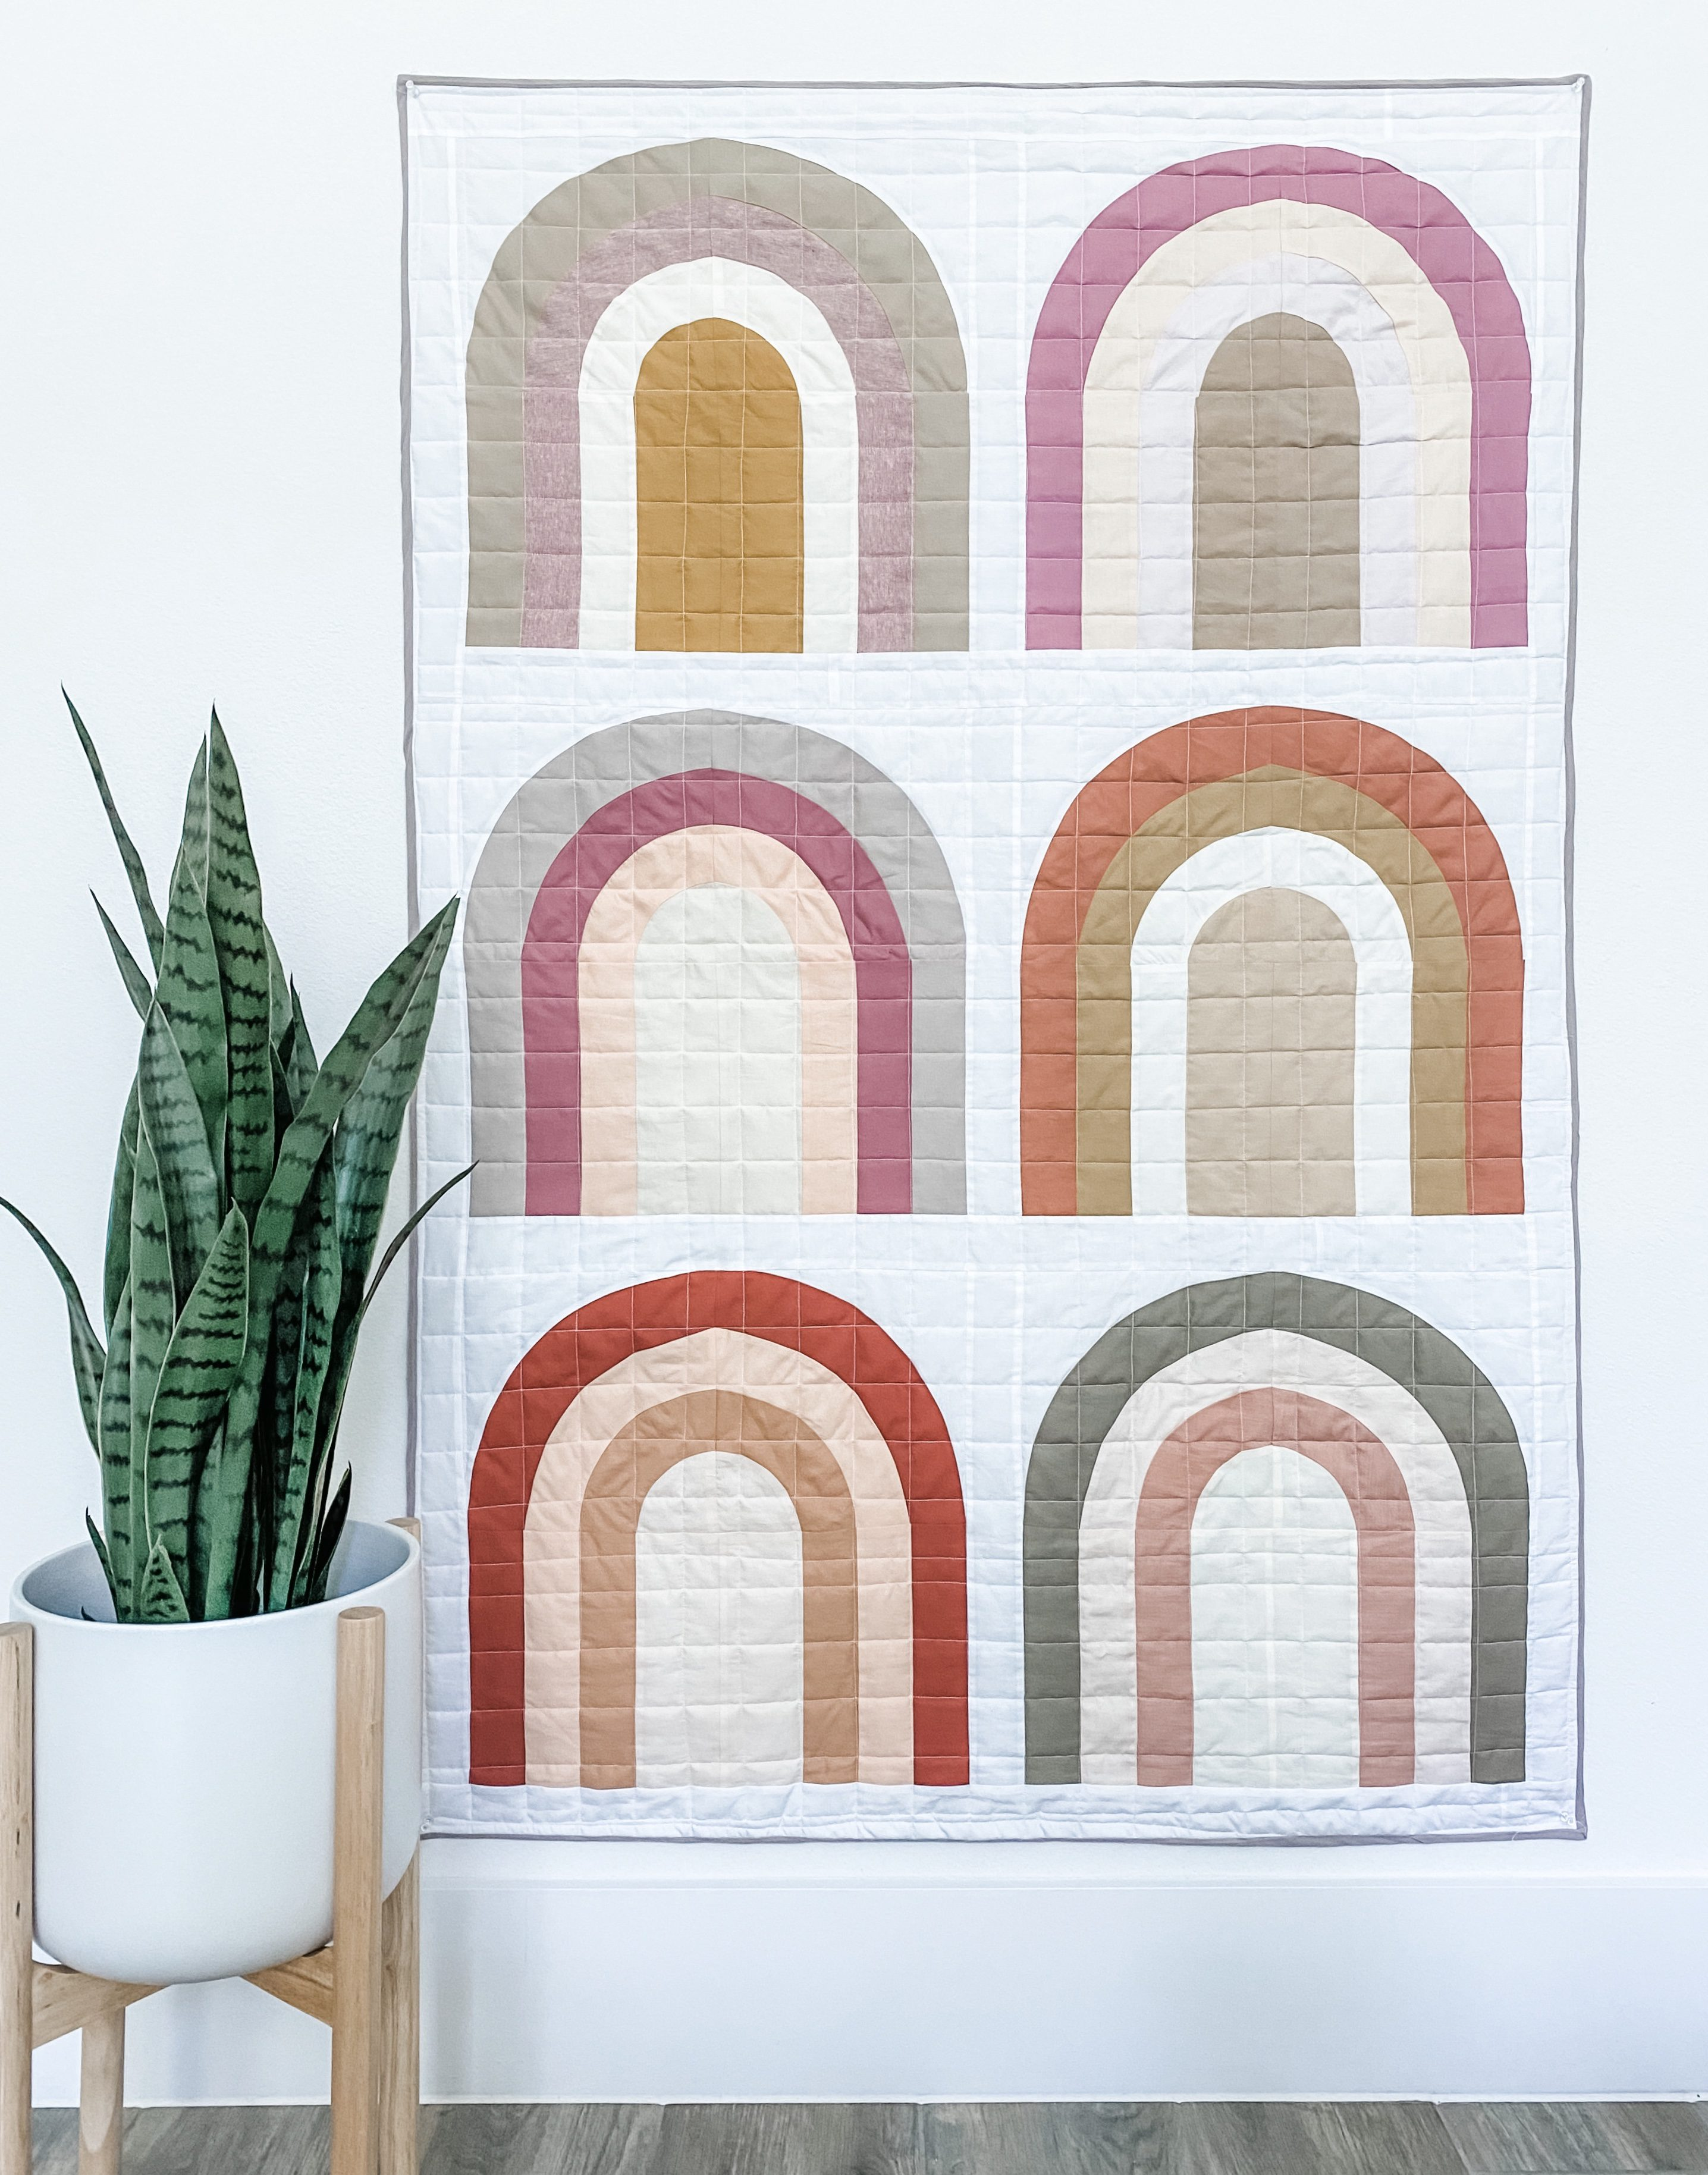 After The Rain Quilt Inspiration with Bias Binding